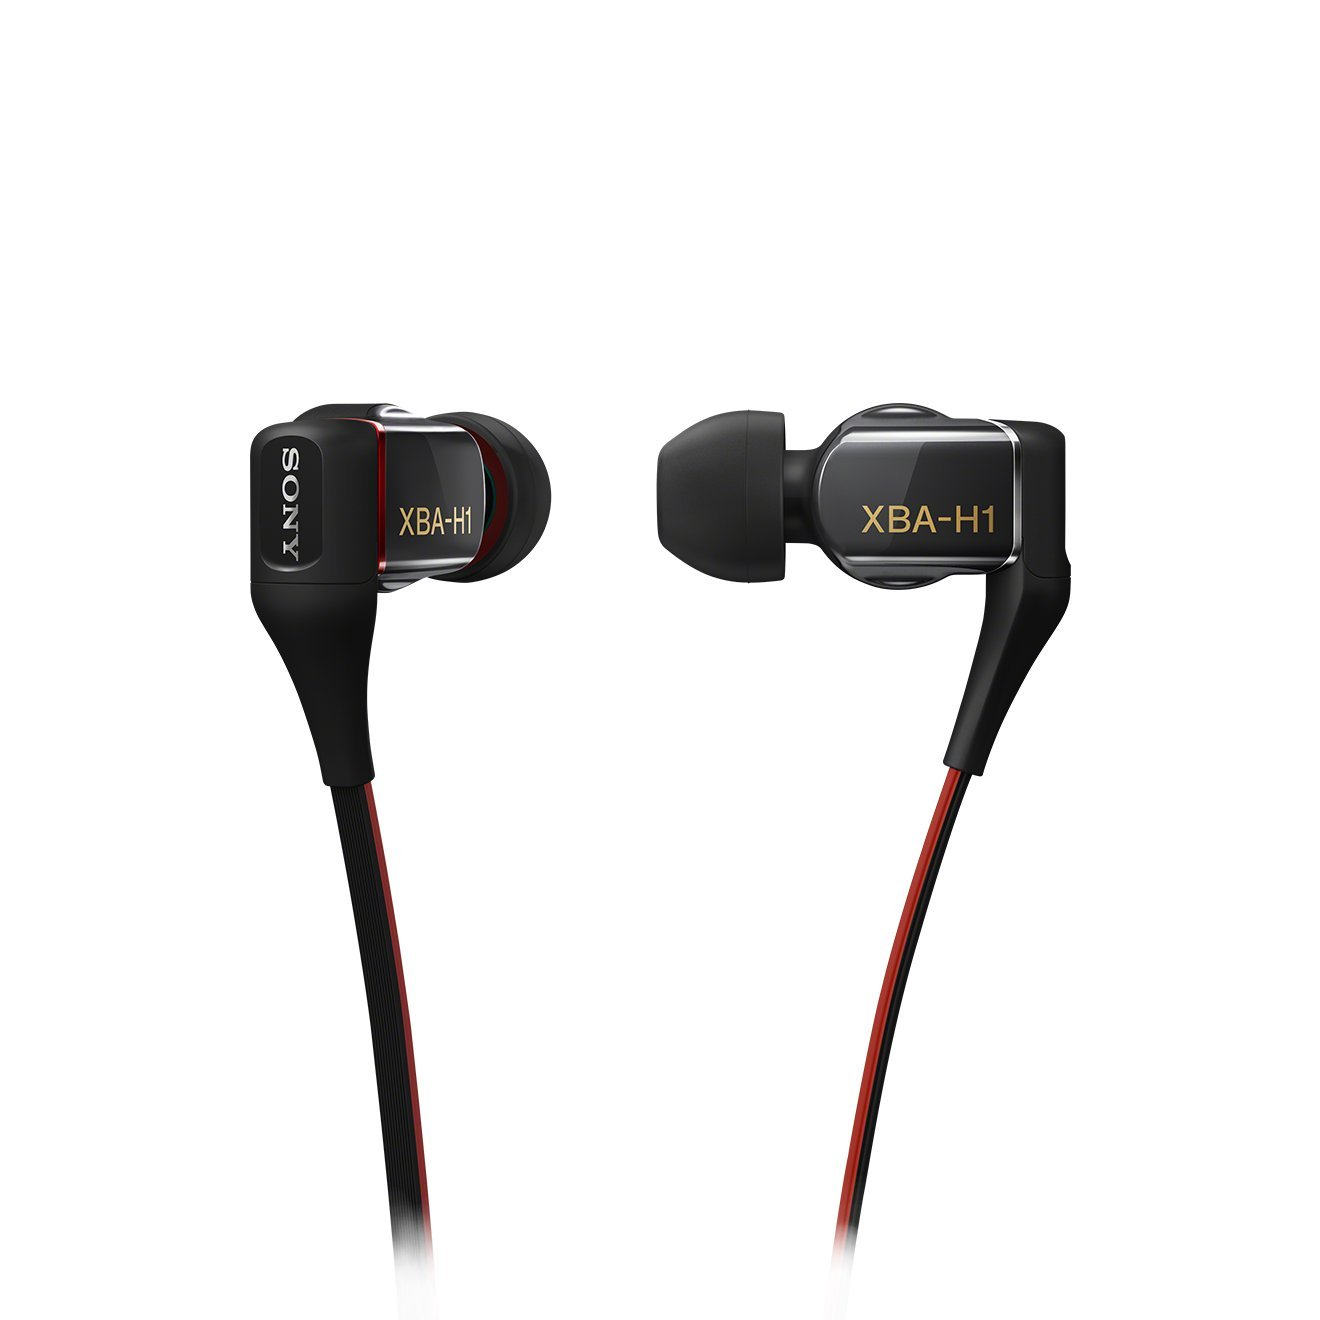 Sony best earbuds earphones in ear headphones for the money